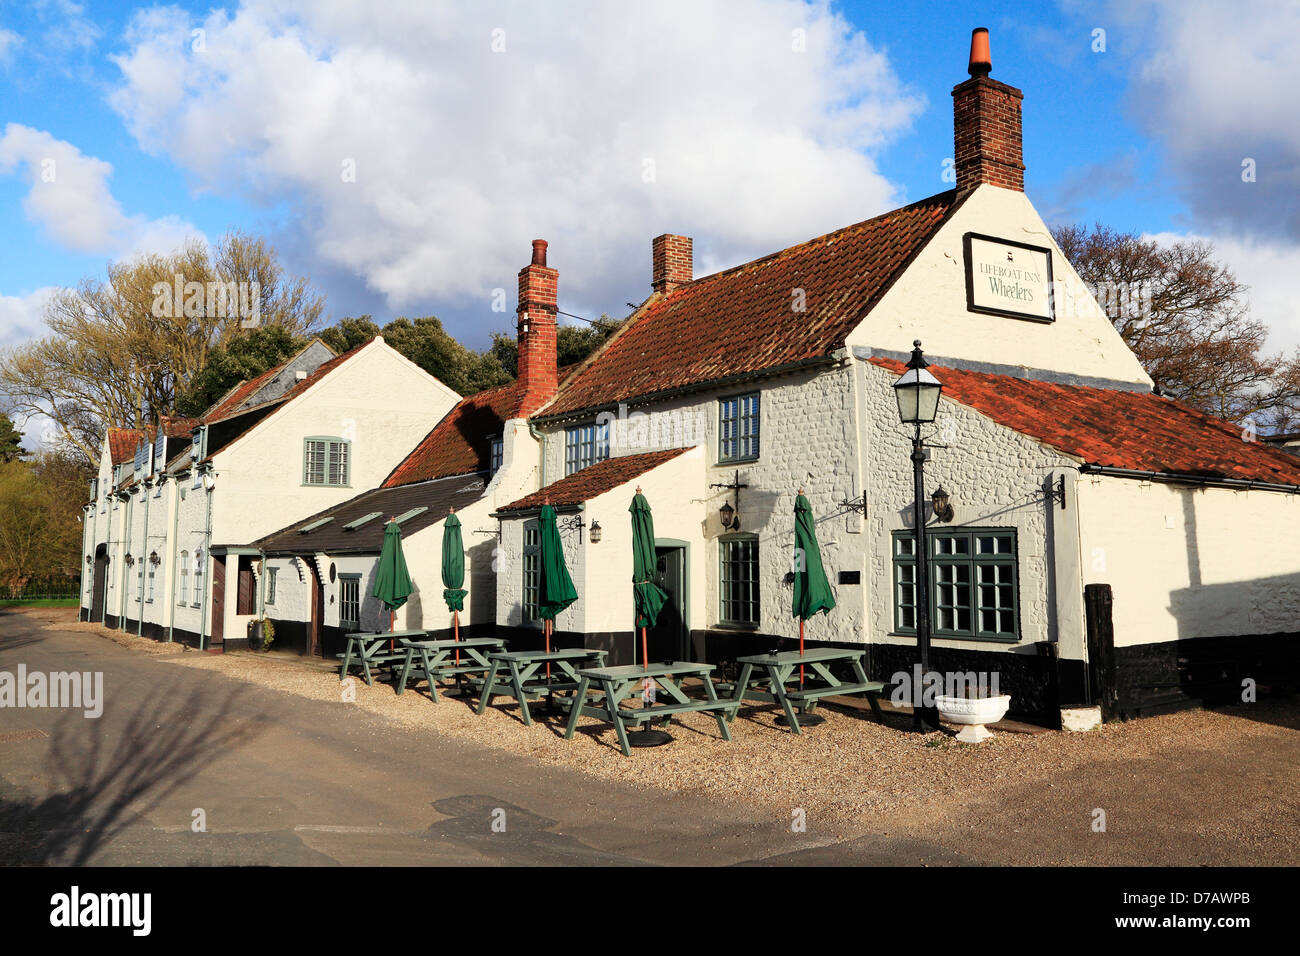 Lifeboat Inn and Hotel, Thornham, Norfolk, England UK, English hotels inns - Stock Image